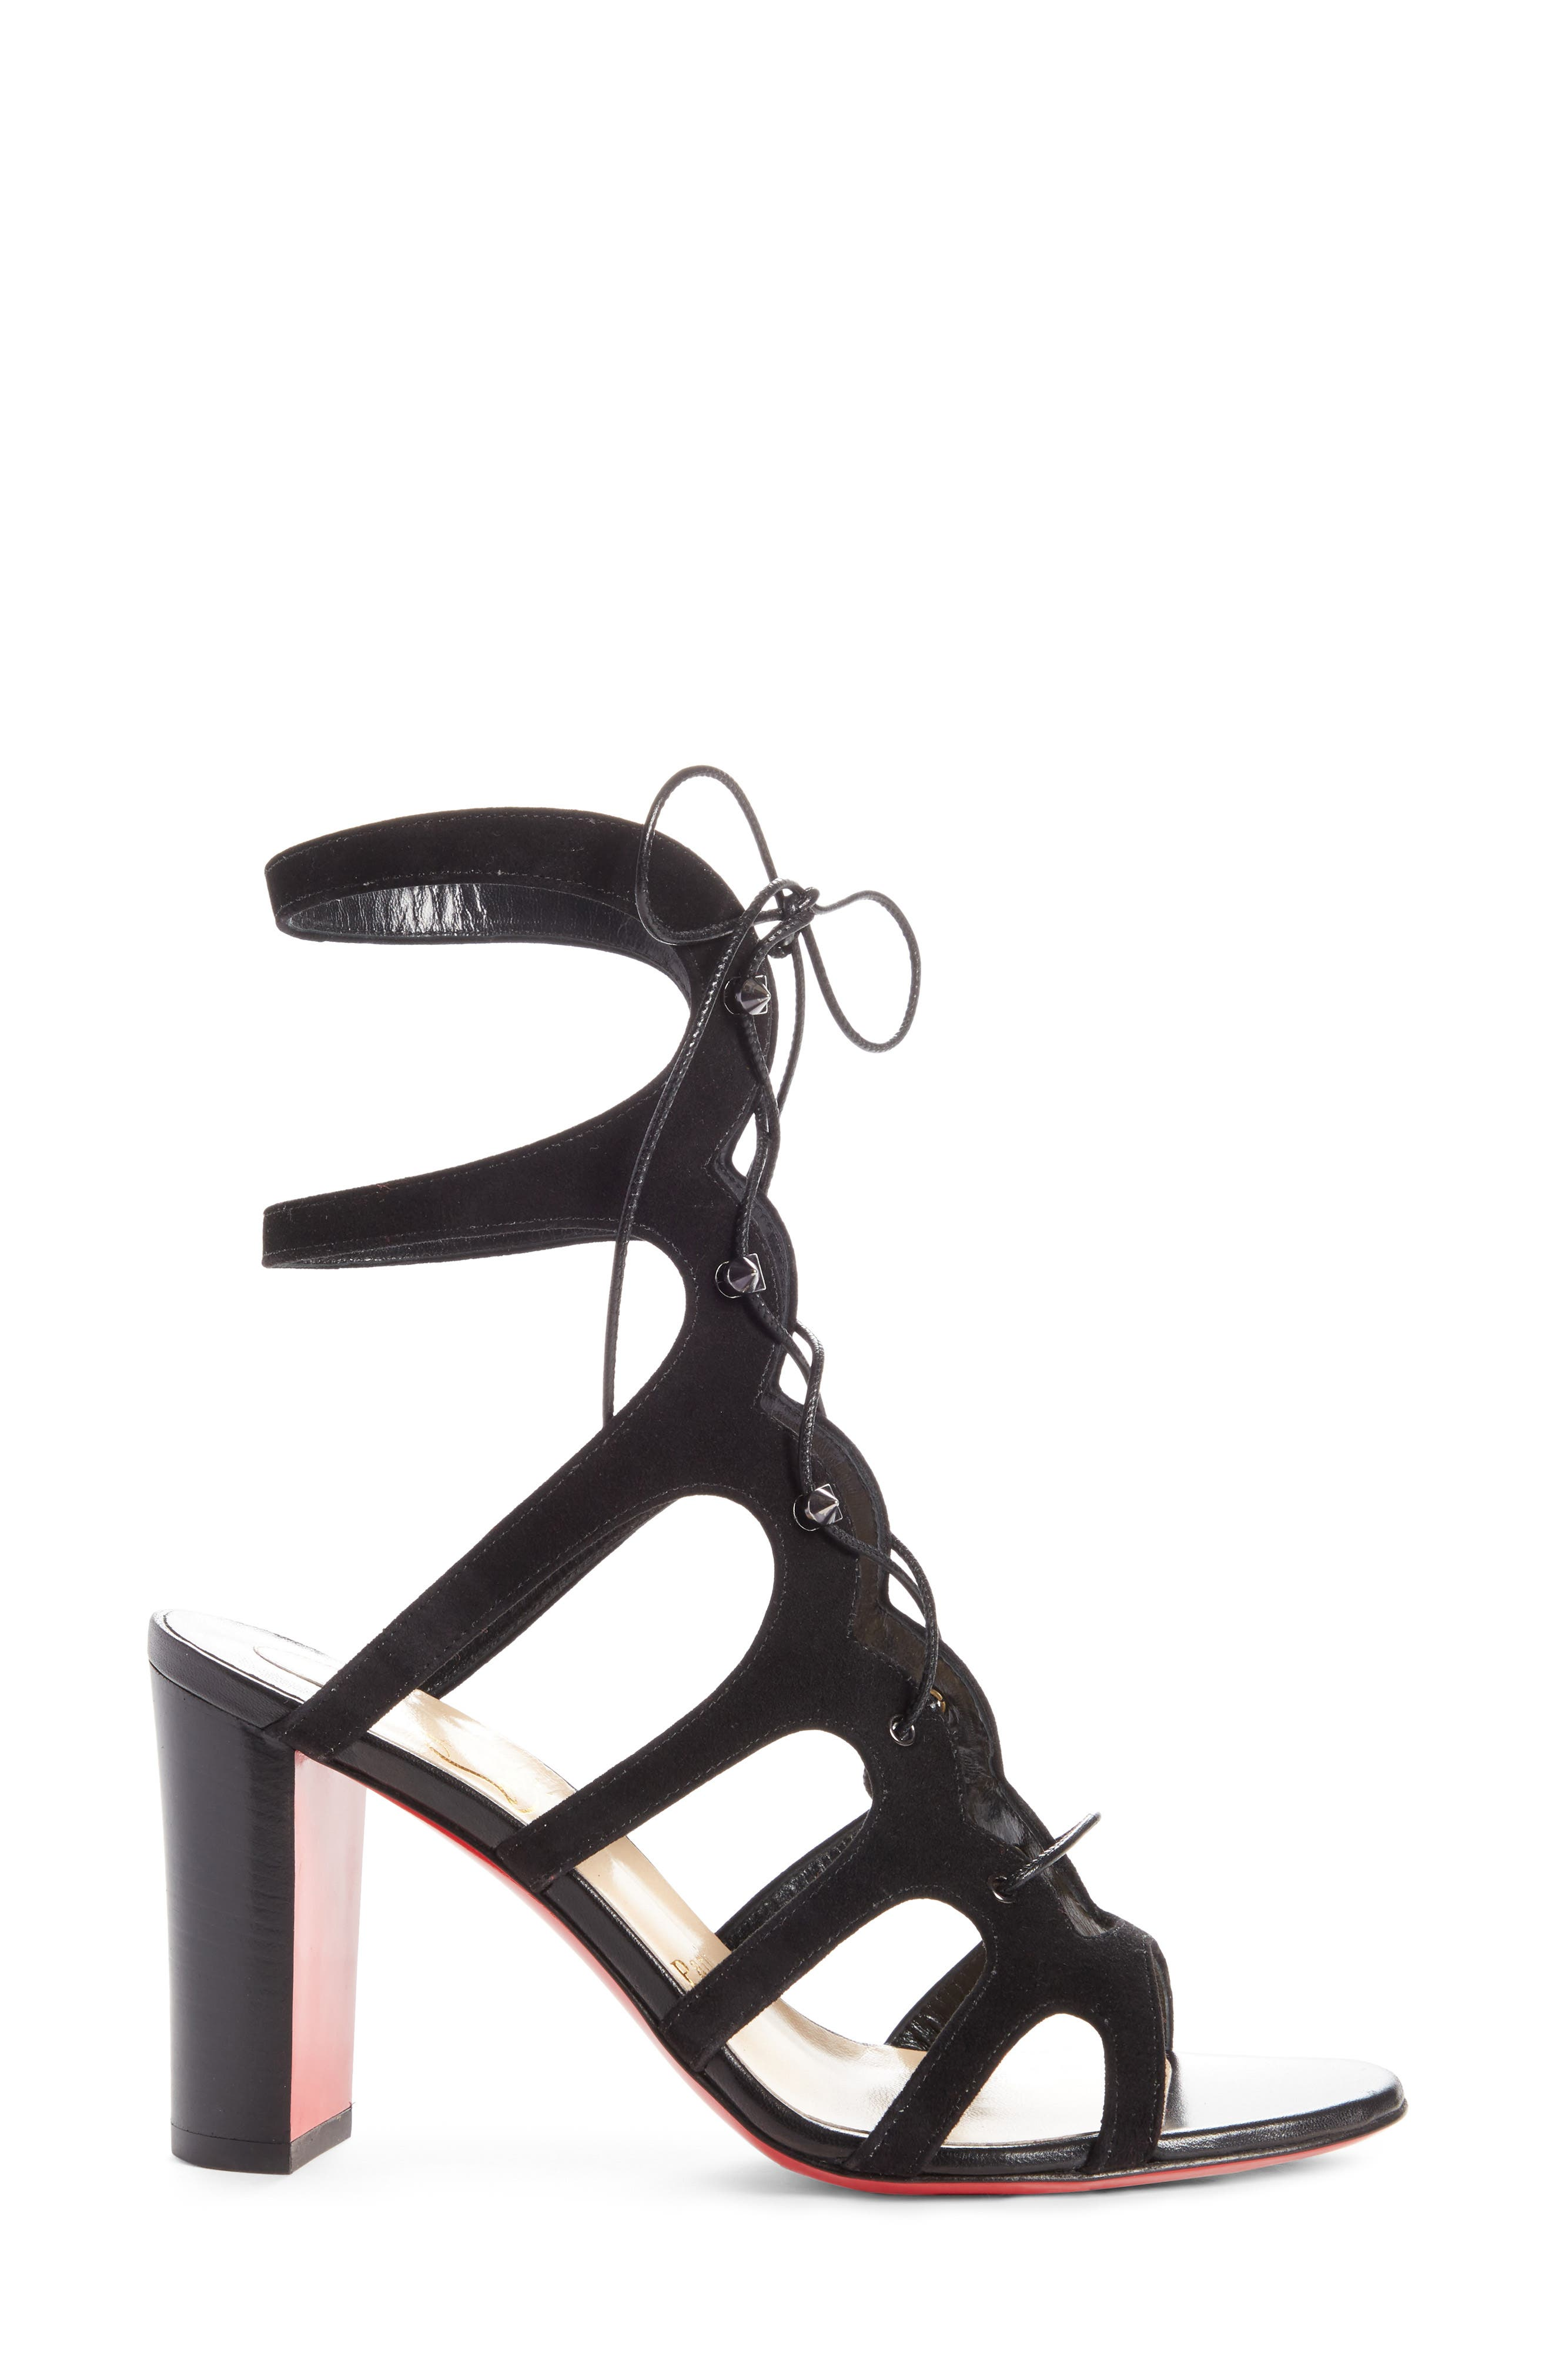 Amazoudur SD Cage Sandal,                             Alternate thumbnail 5, color,